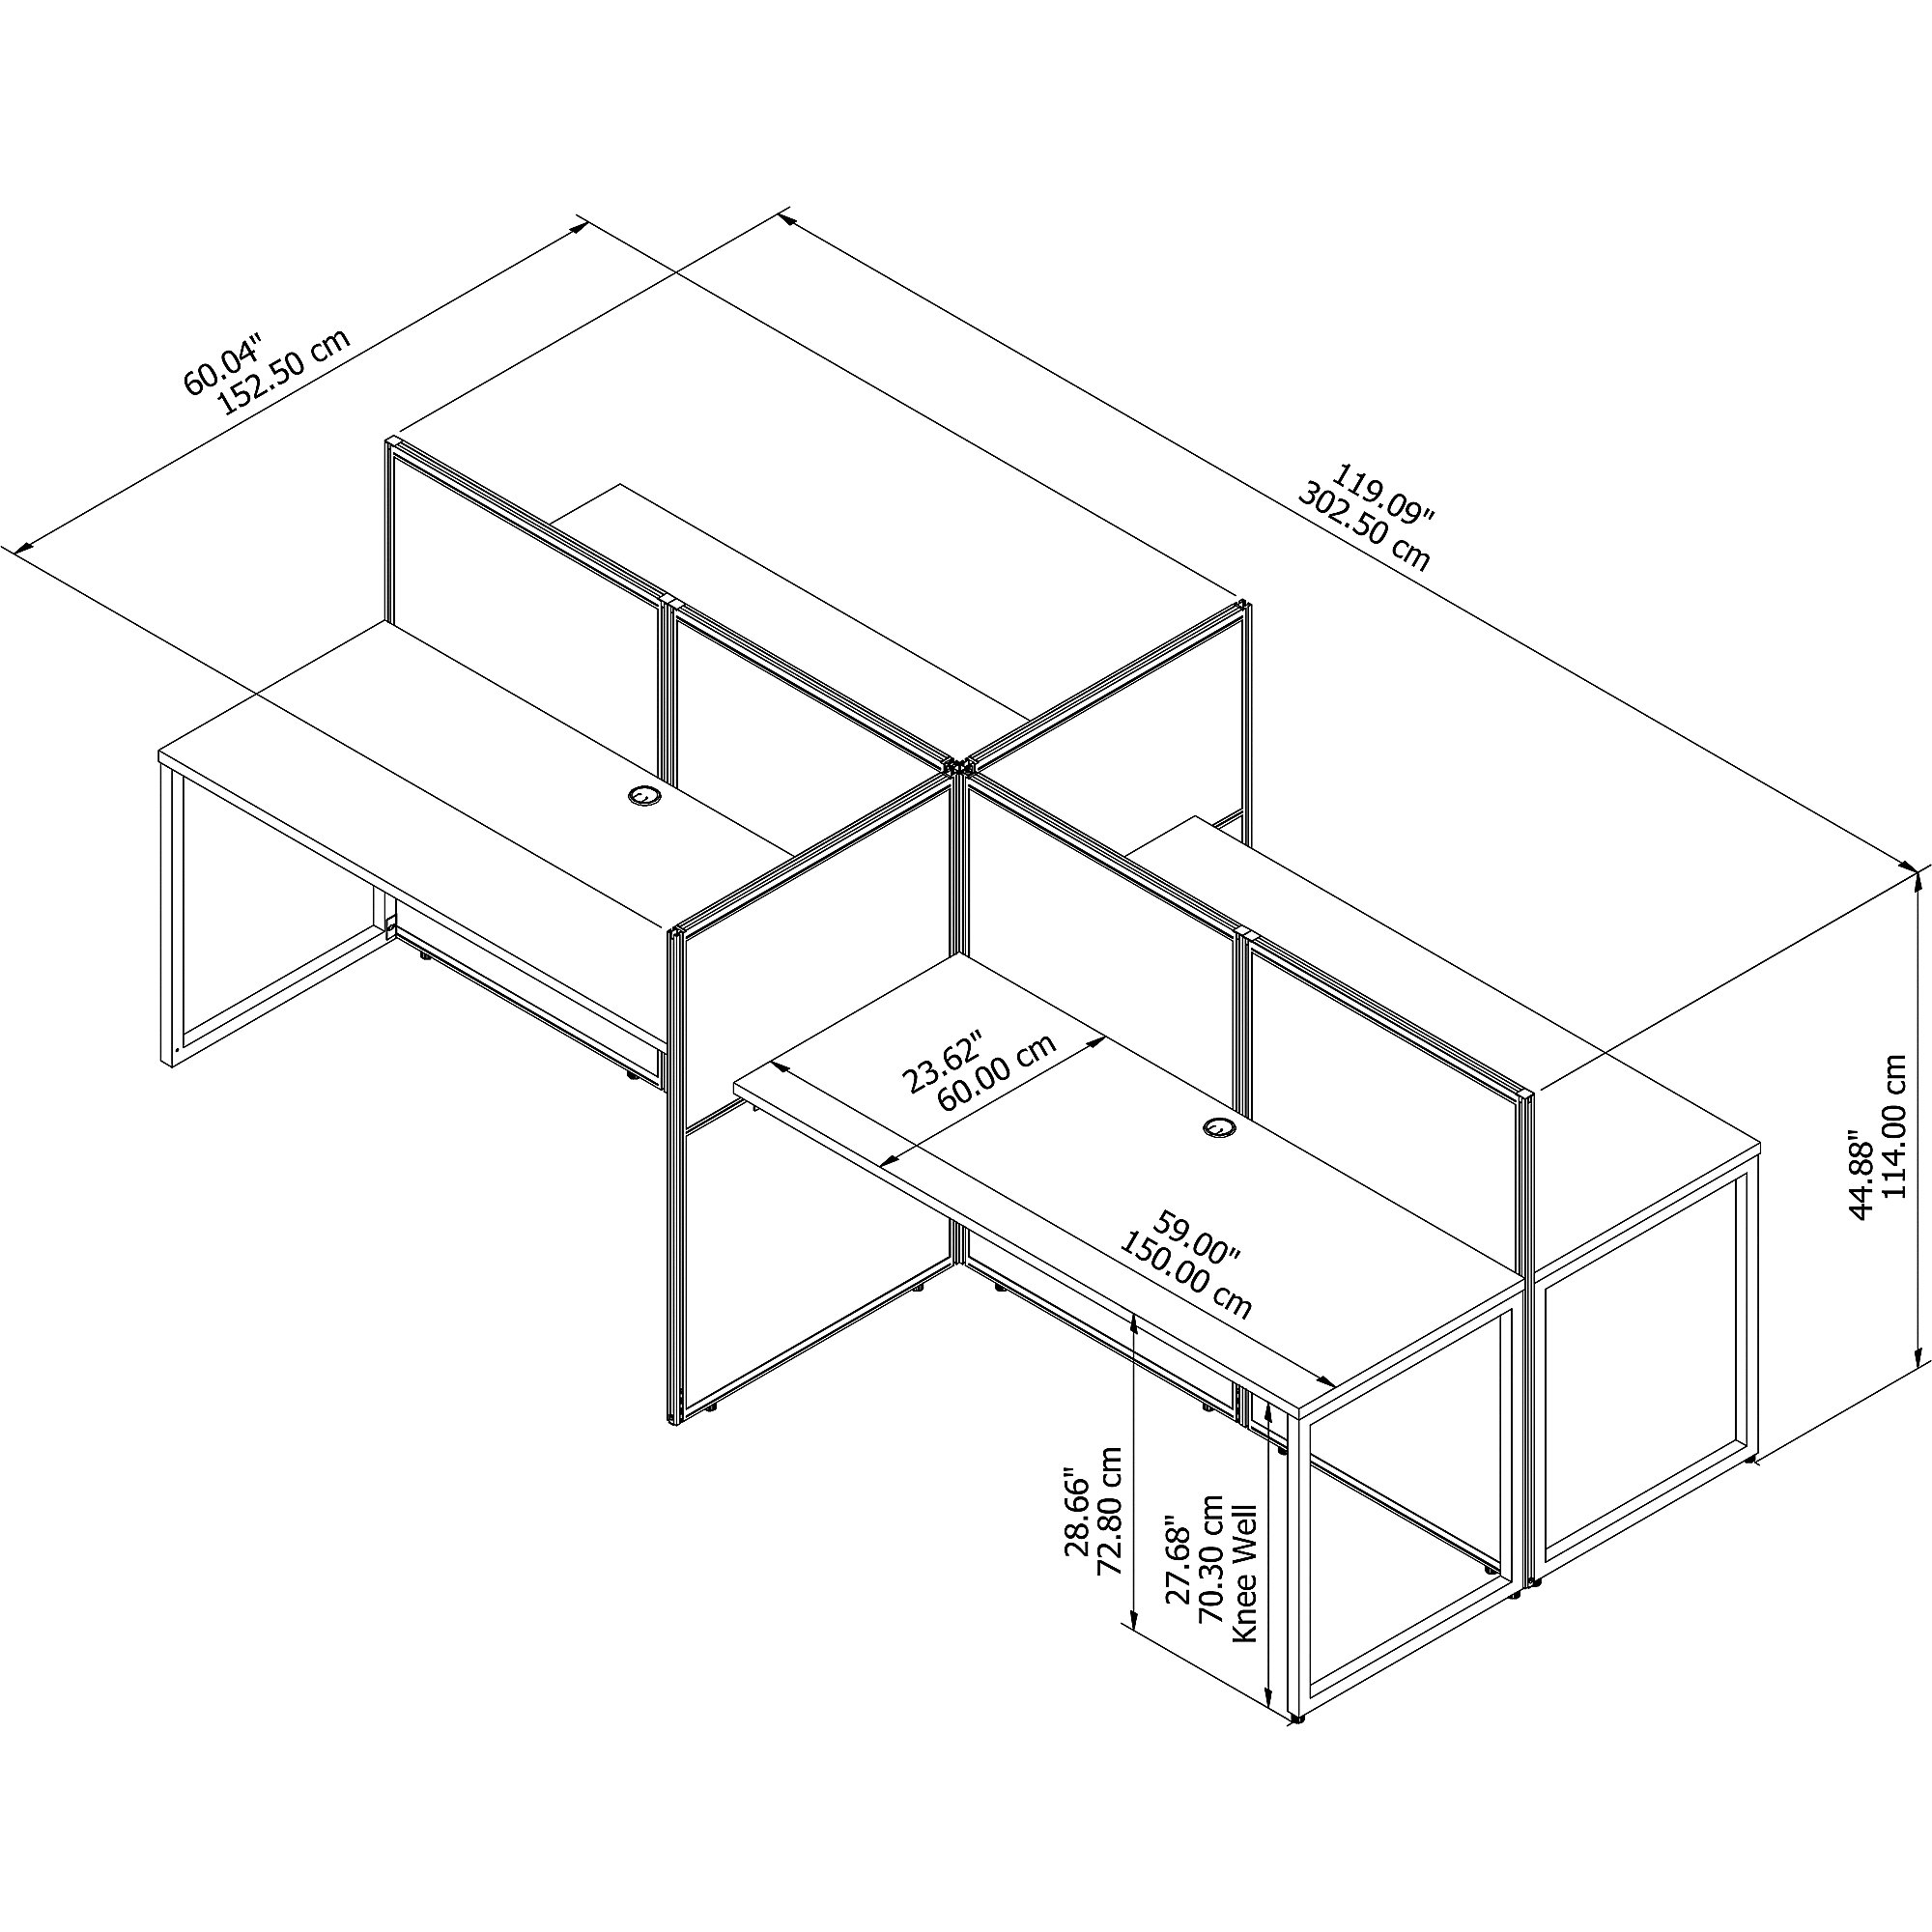 easy office 4 person cubicle dimensions